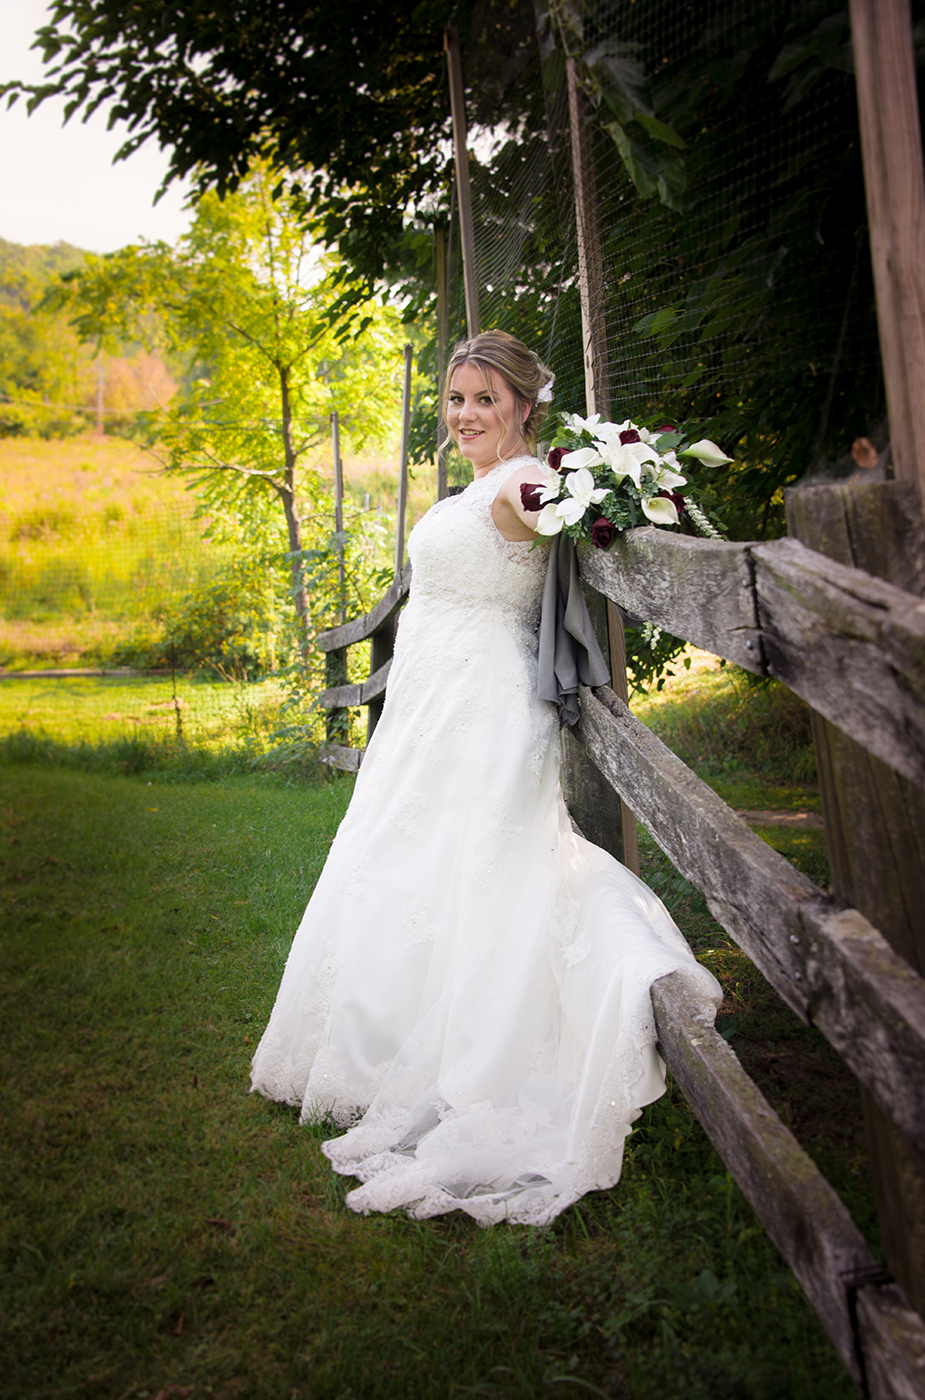 All Occasions Photography Albany NY - Wedding Photography Bride Leaning Against Fence